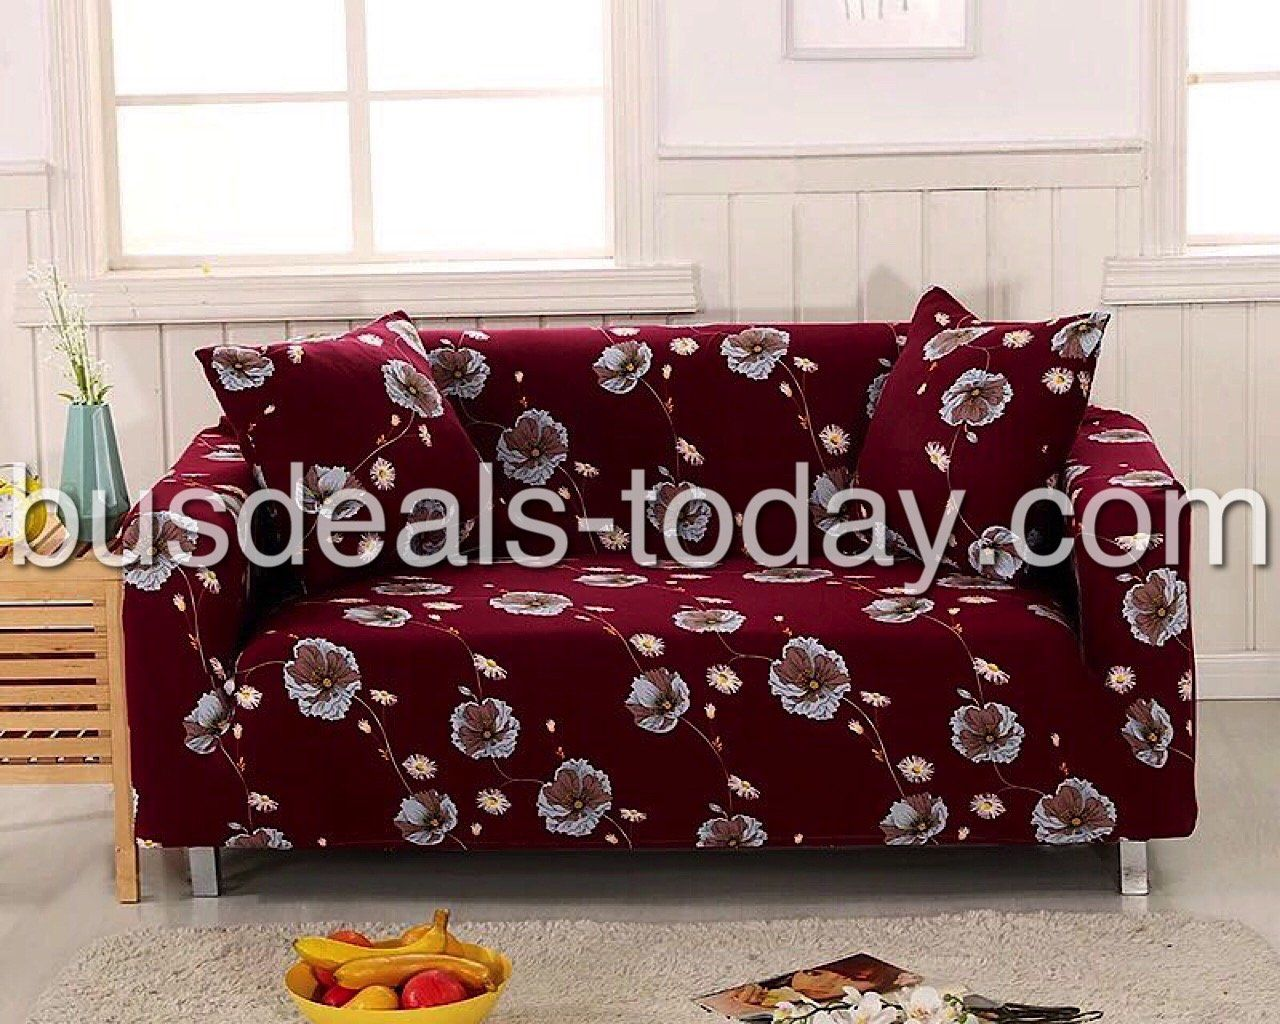 Now Available On Our Store Latest Selection Of Bed Linen Check It Out Here Busdeals Today Com Single Seater Sofa Sofa Covers Sofa Material